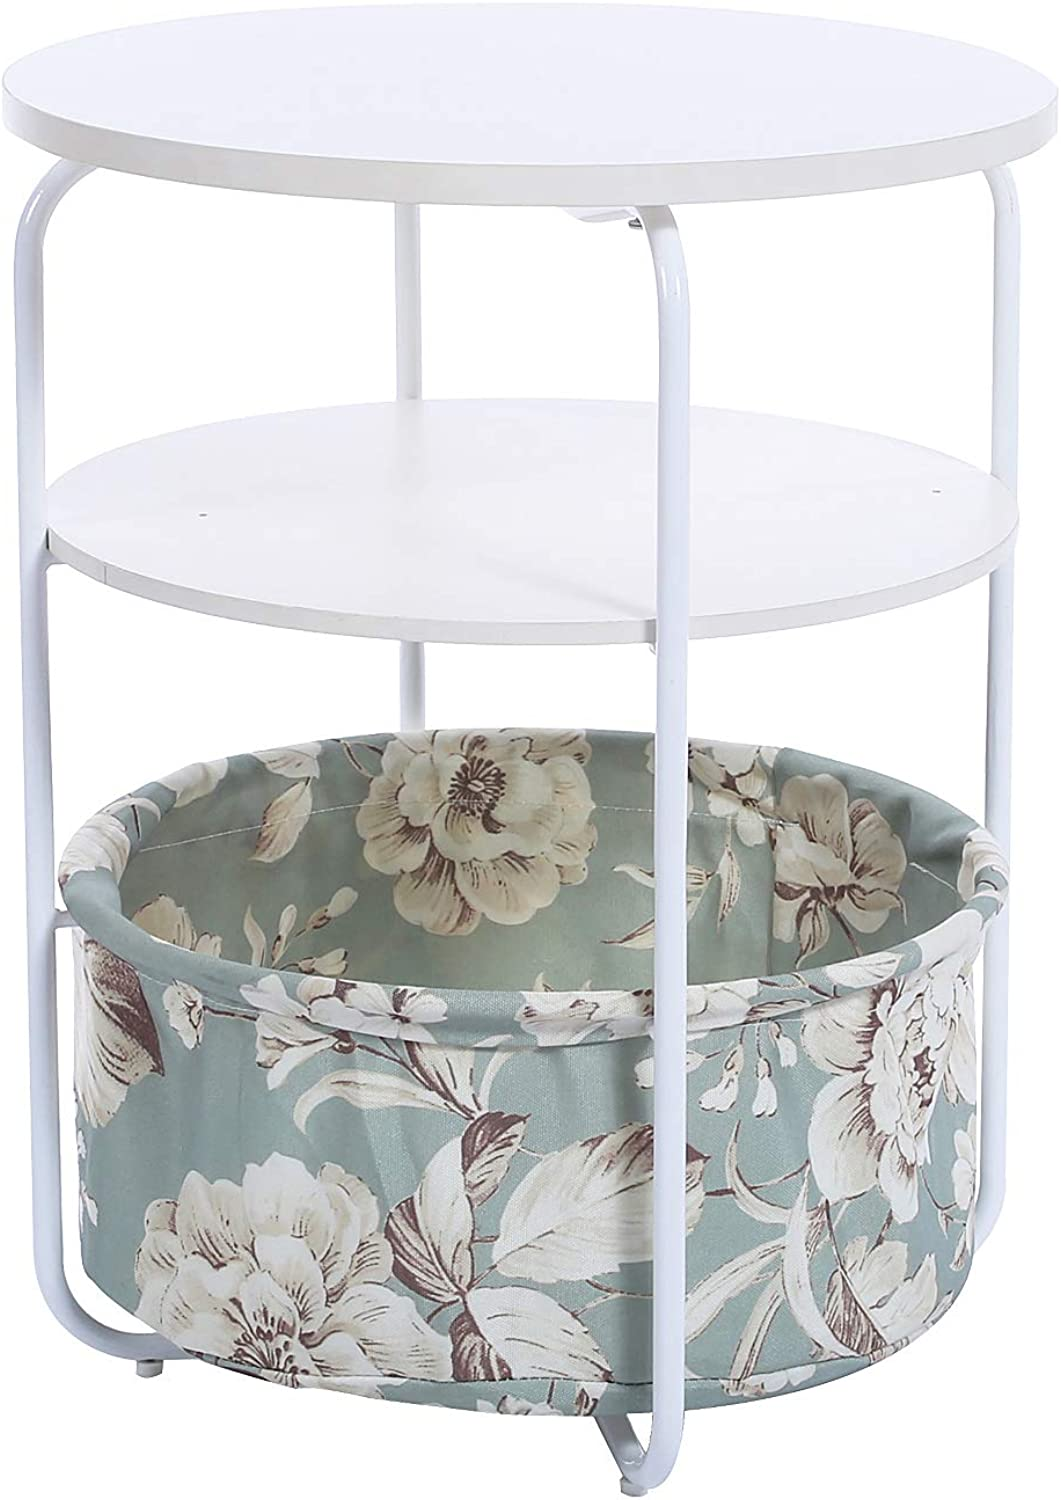 Garwarm 3-Tier Round Side Table End Table Nightstand with Fabric Storage Basket, Modern Studio Collection for Small Spaces Bedroom Living Room, 16.5 × 16.5 × 21 in(LWH)